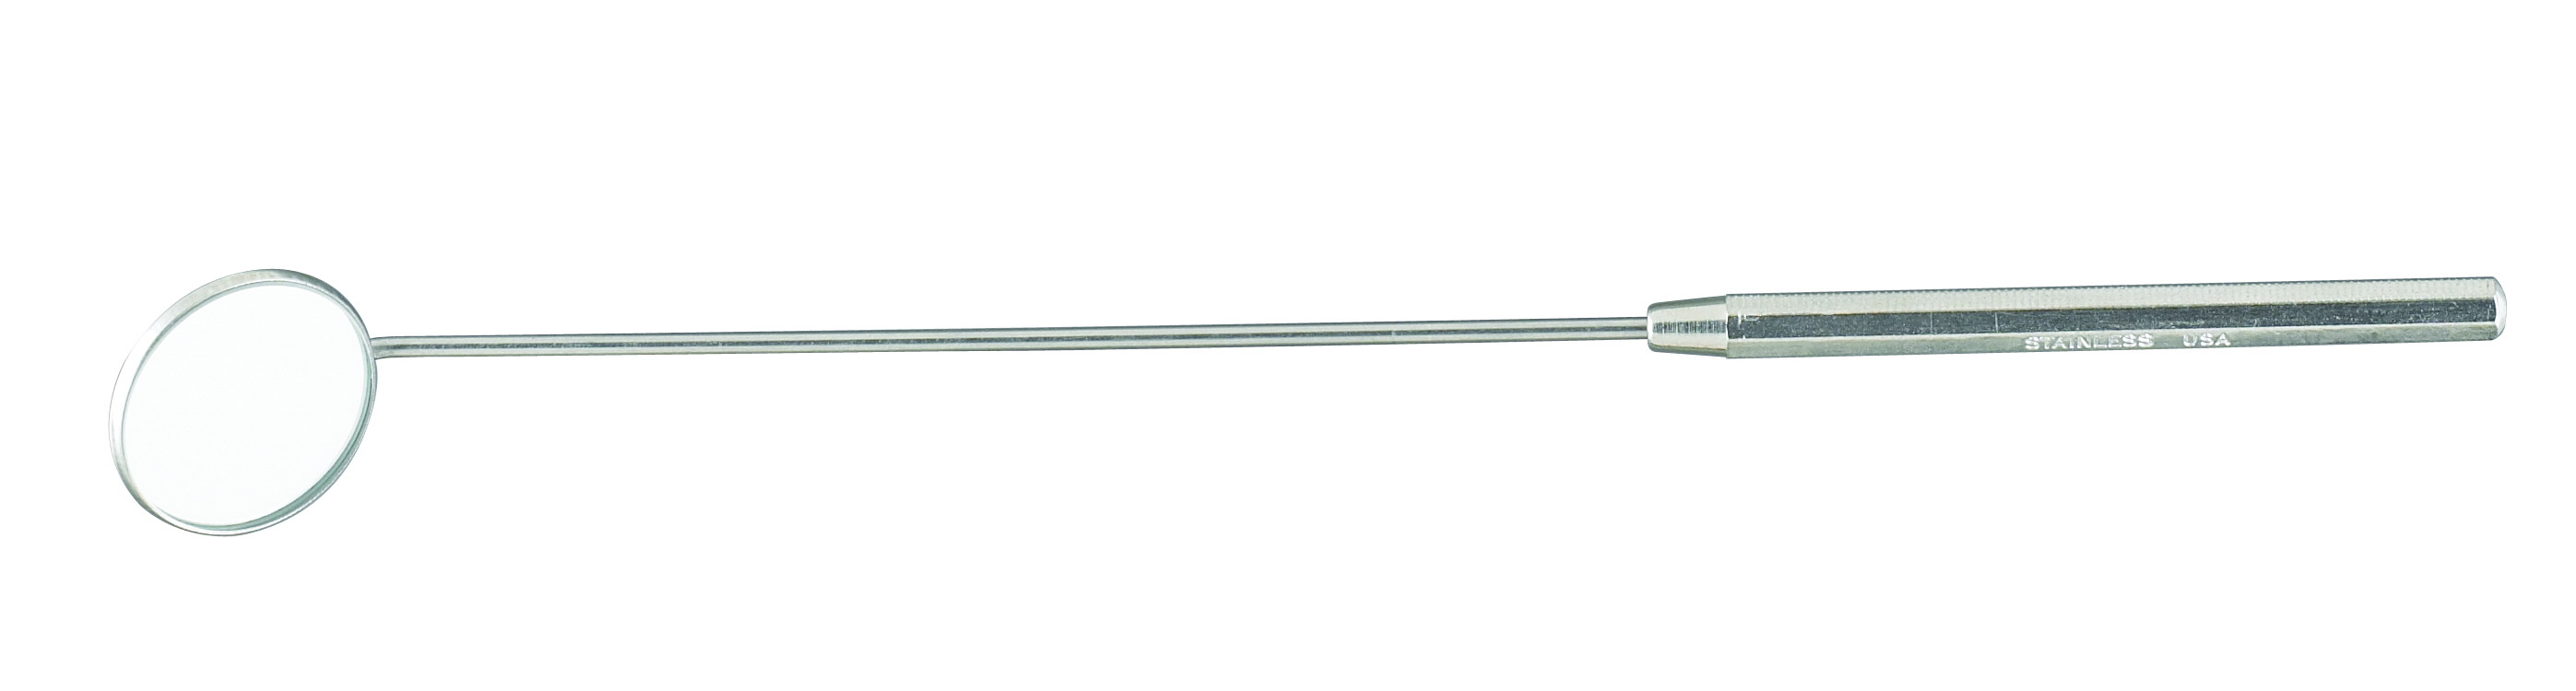 laryngeal-mirror-size-5-with-octagon-threaded-handle-24-mm-23-14-5-miltex.jpg